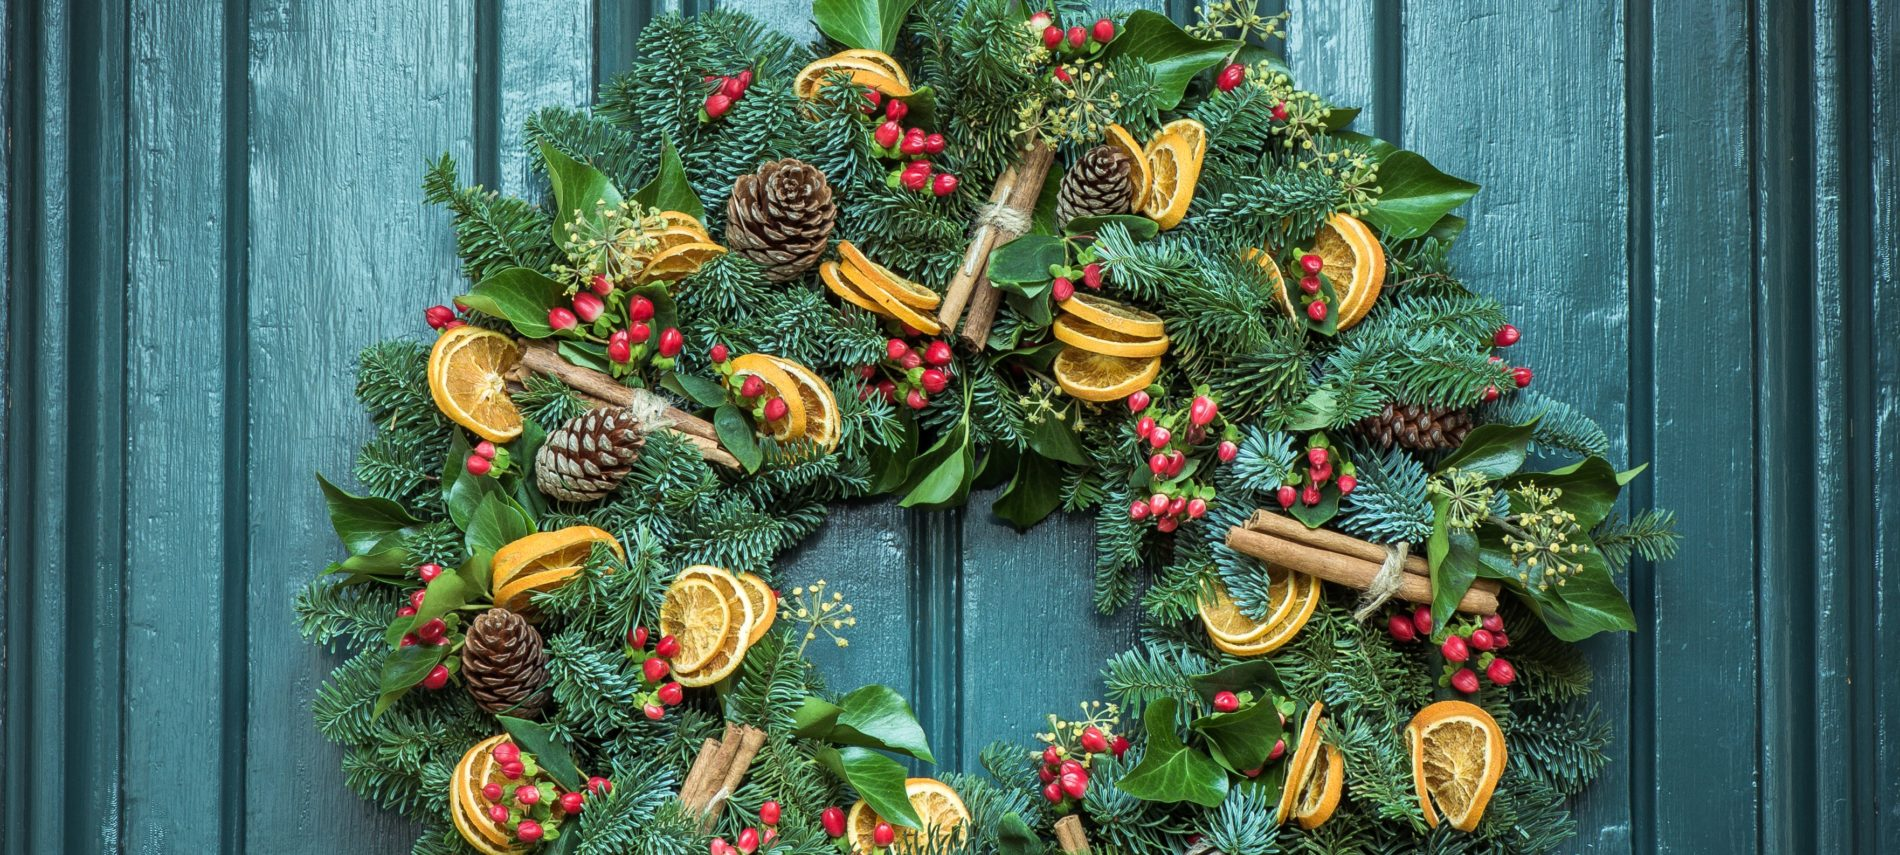 Colonial-Inspired Natural Holiday Decorations